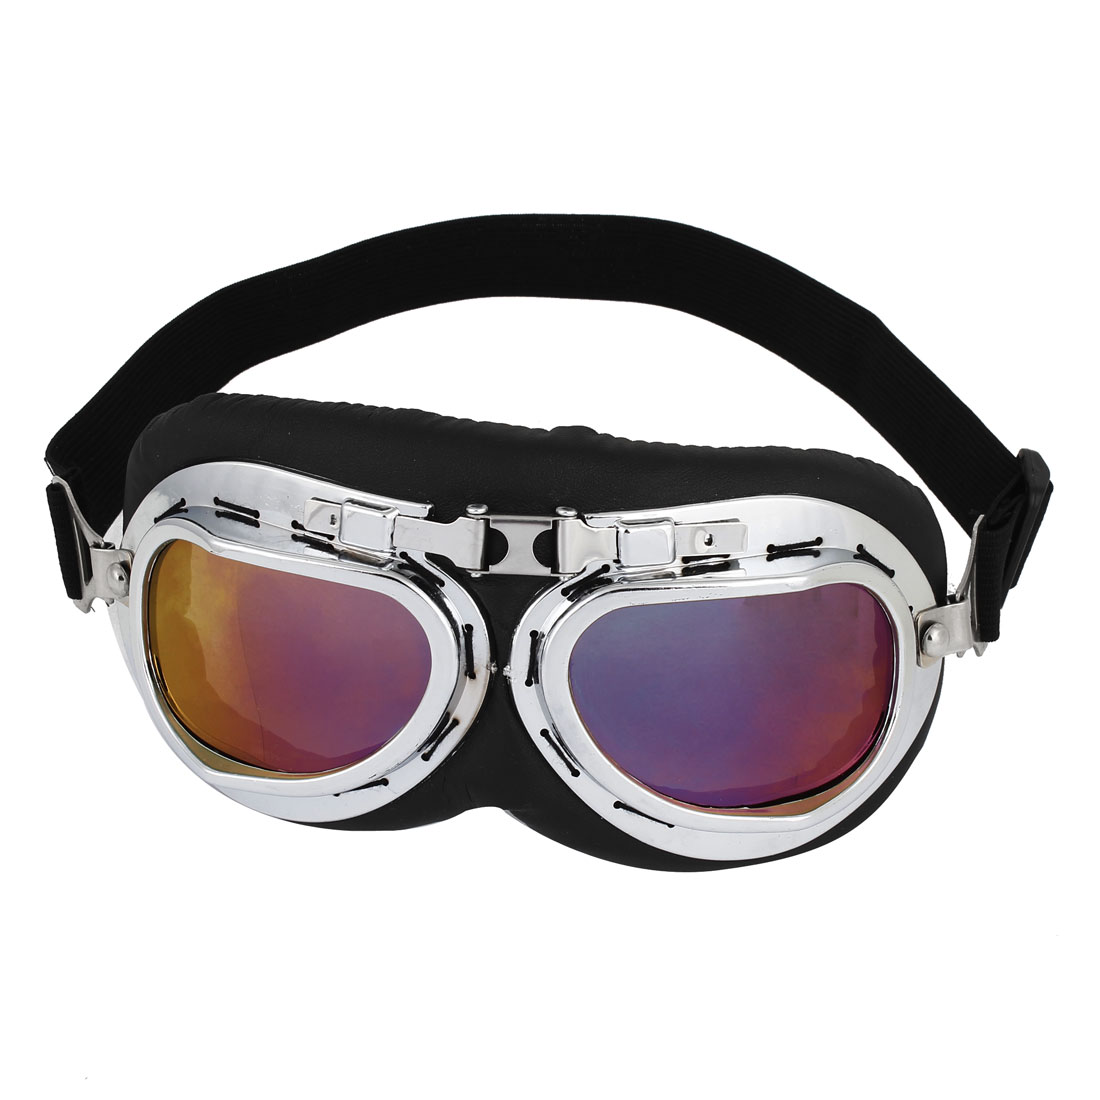 Unisex Full Frame Adjustable Strap Purple Lens Ski Motorcycle Goggles Wind Glasses